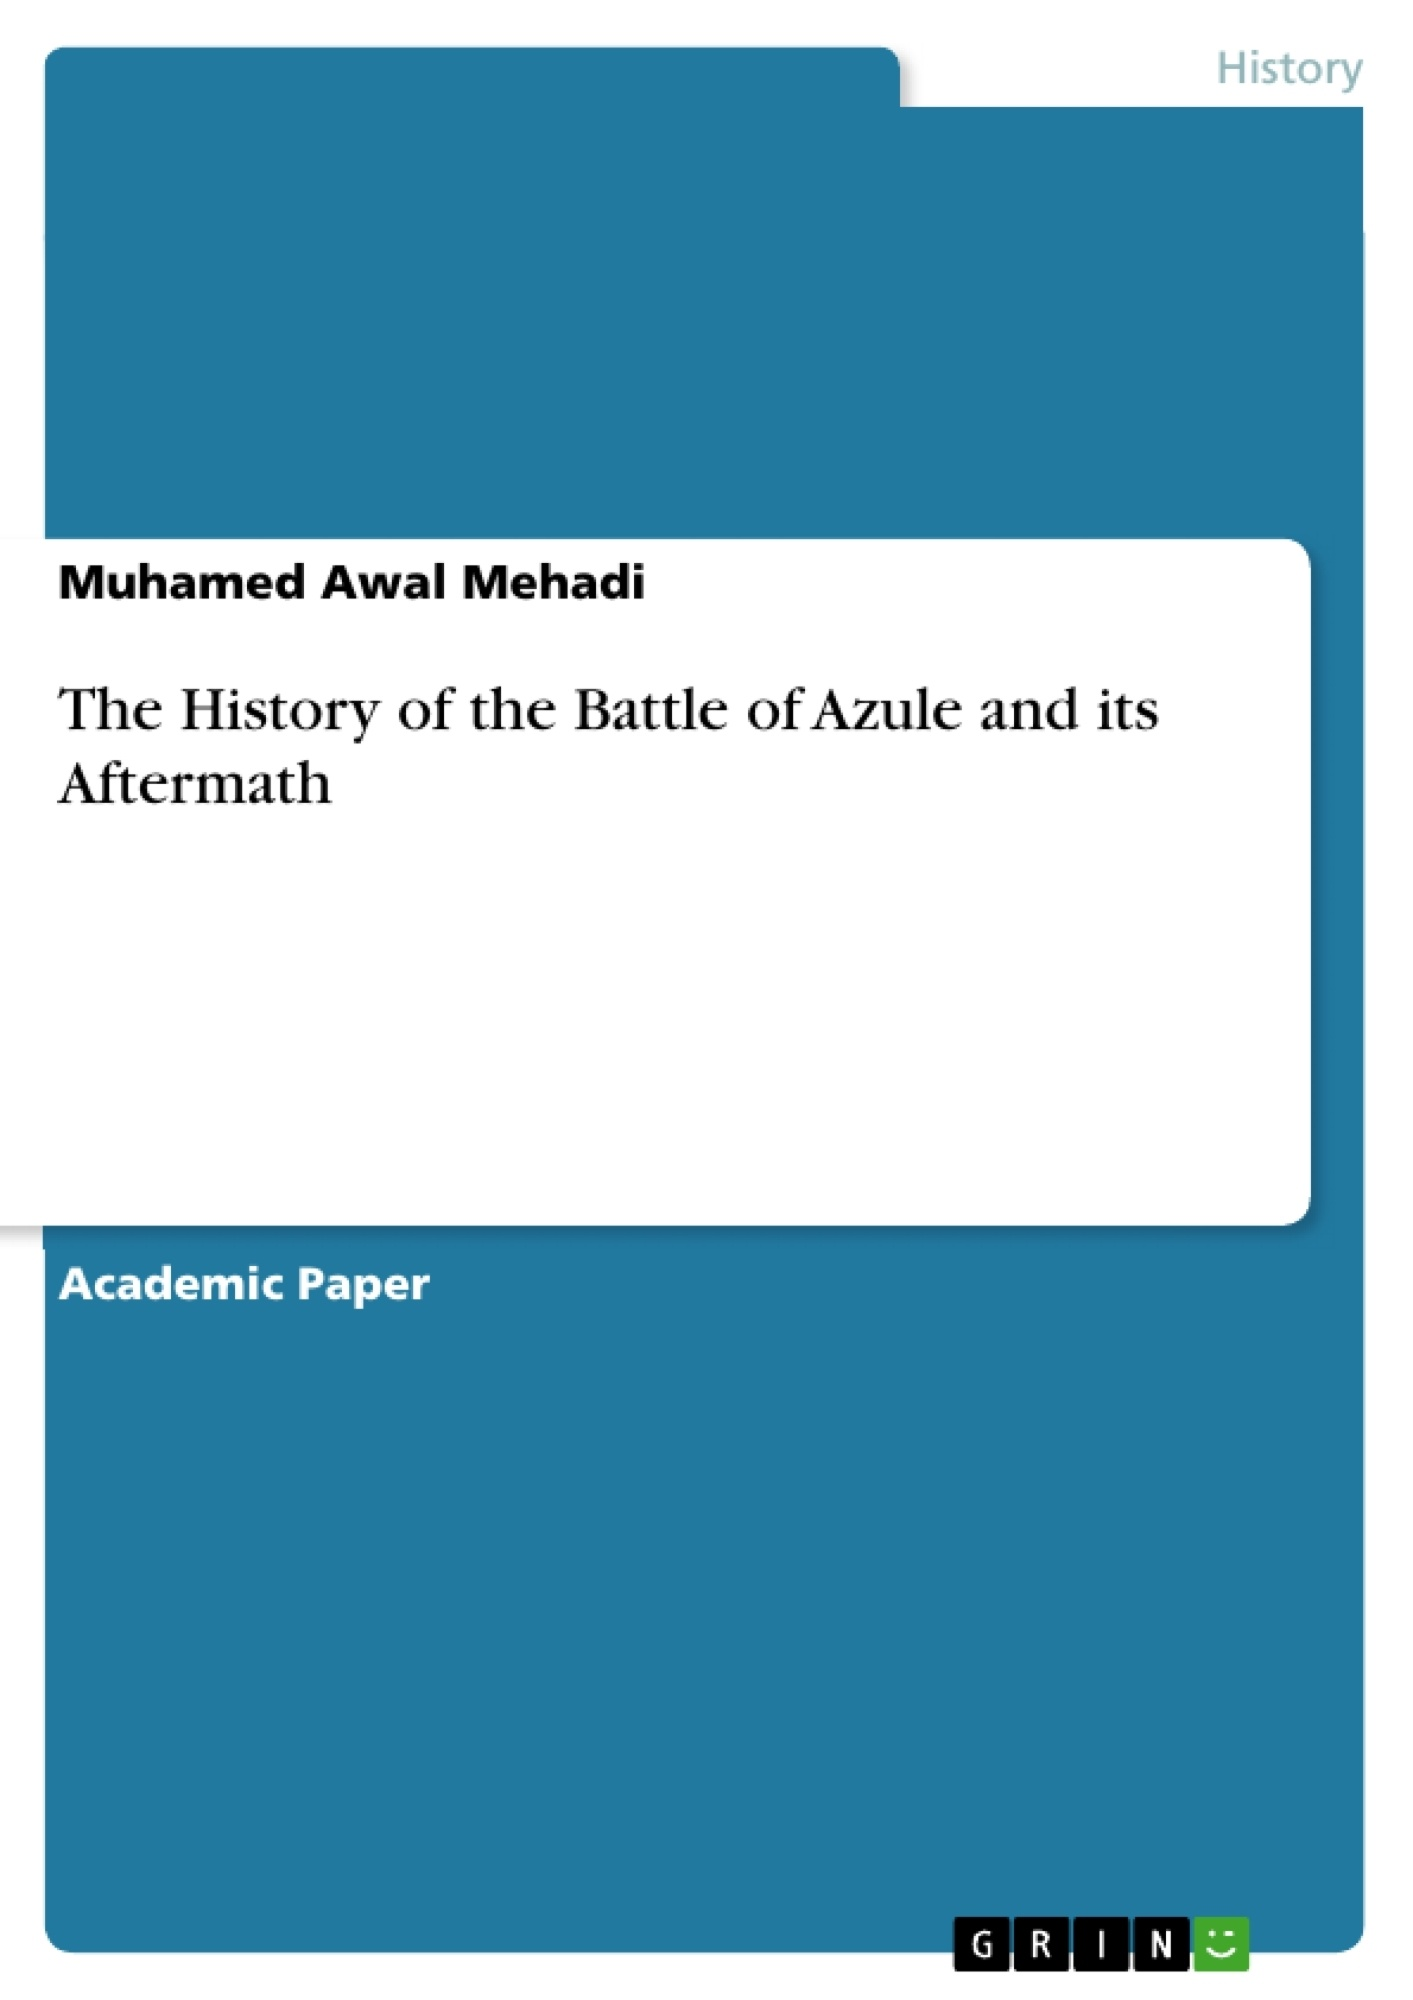 Title: The History of the Battle of Azule and its Aftermath